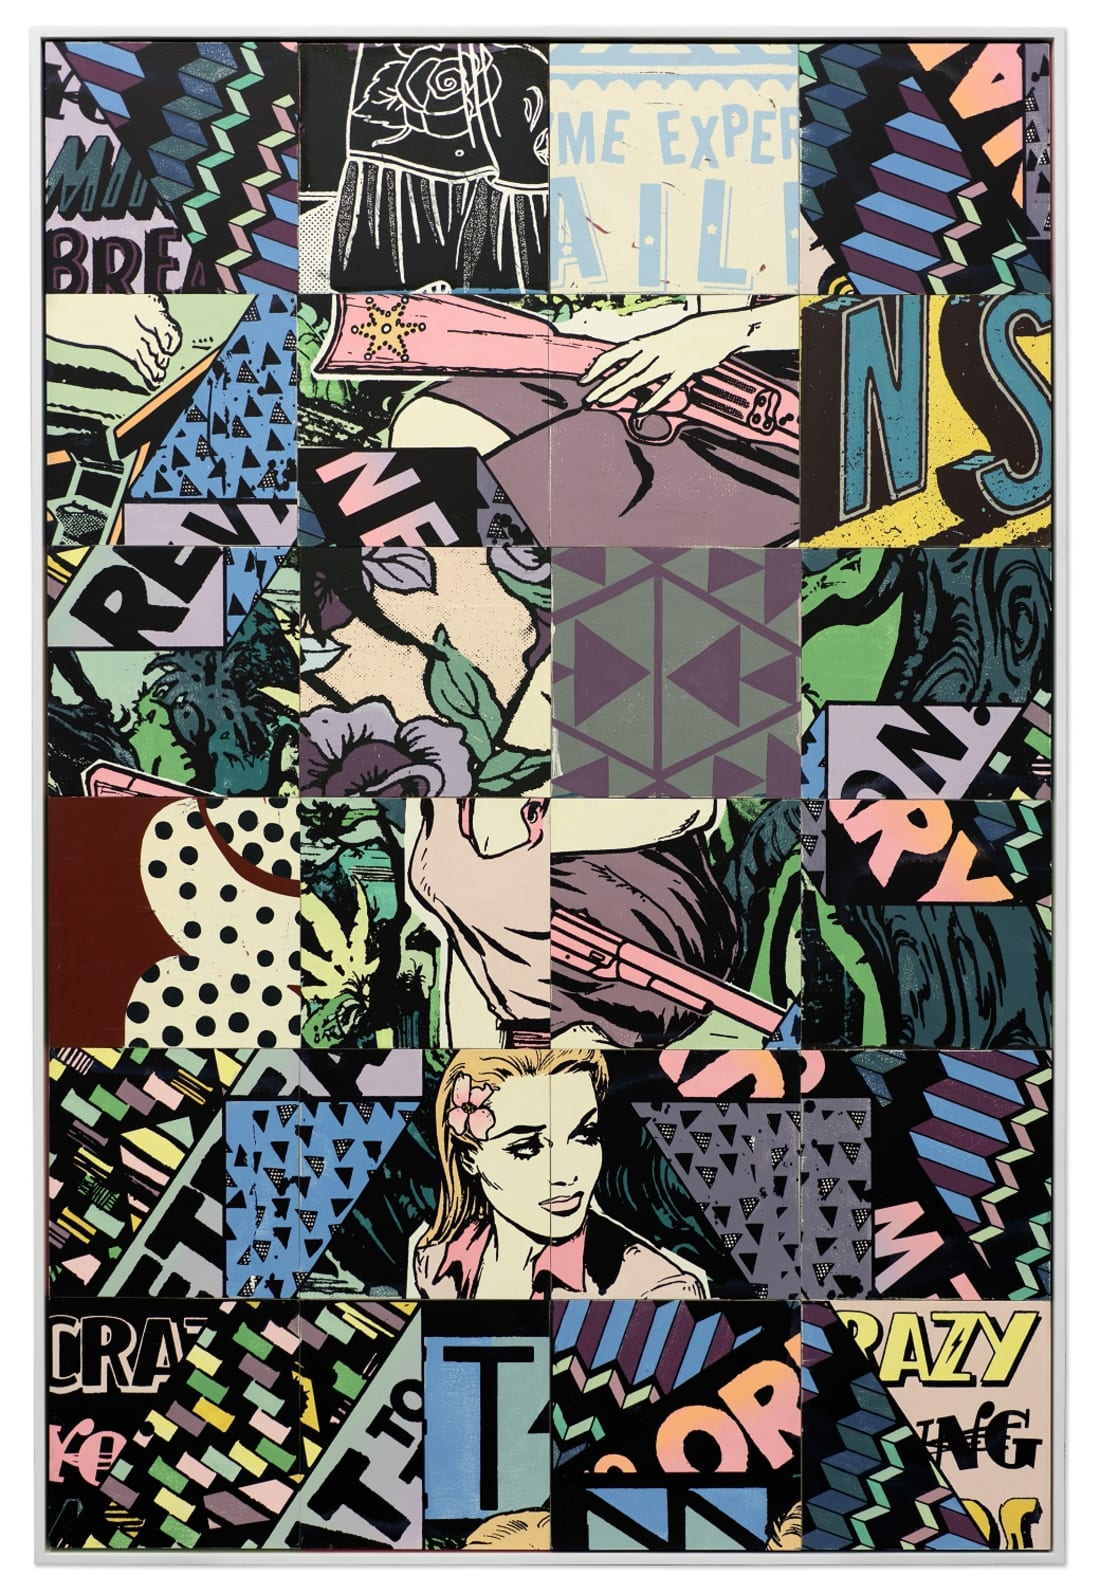 FAILE - 'NSNERY' (US)